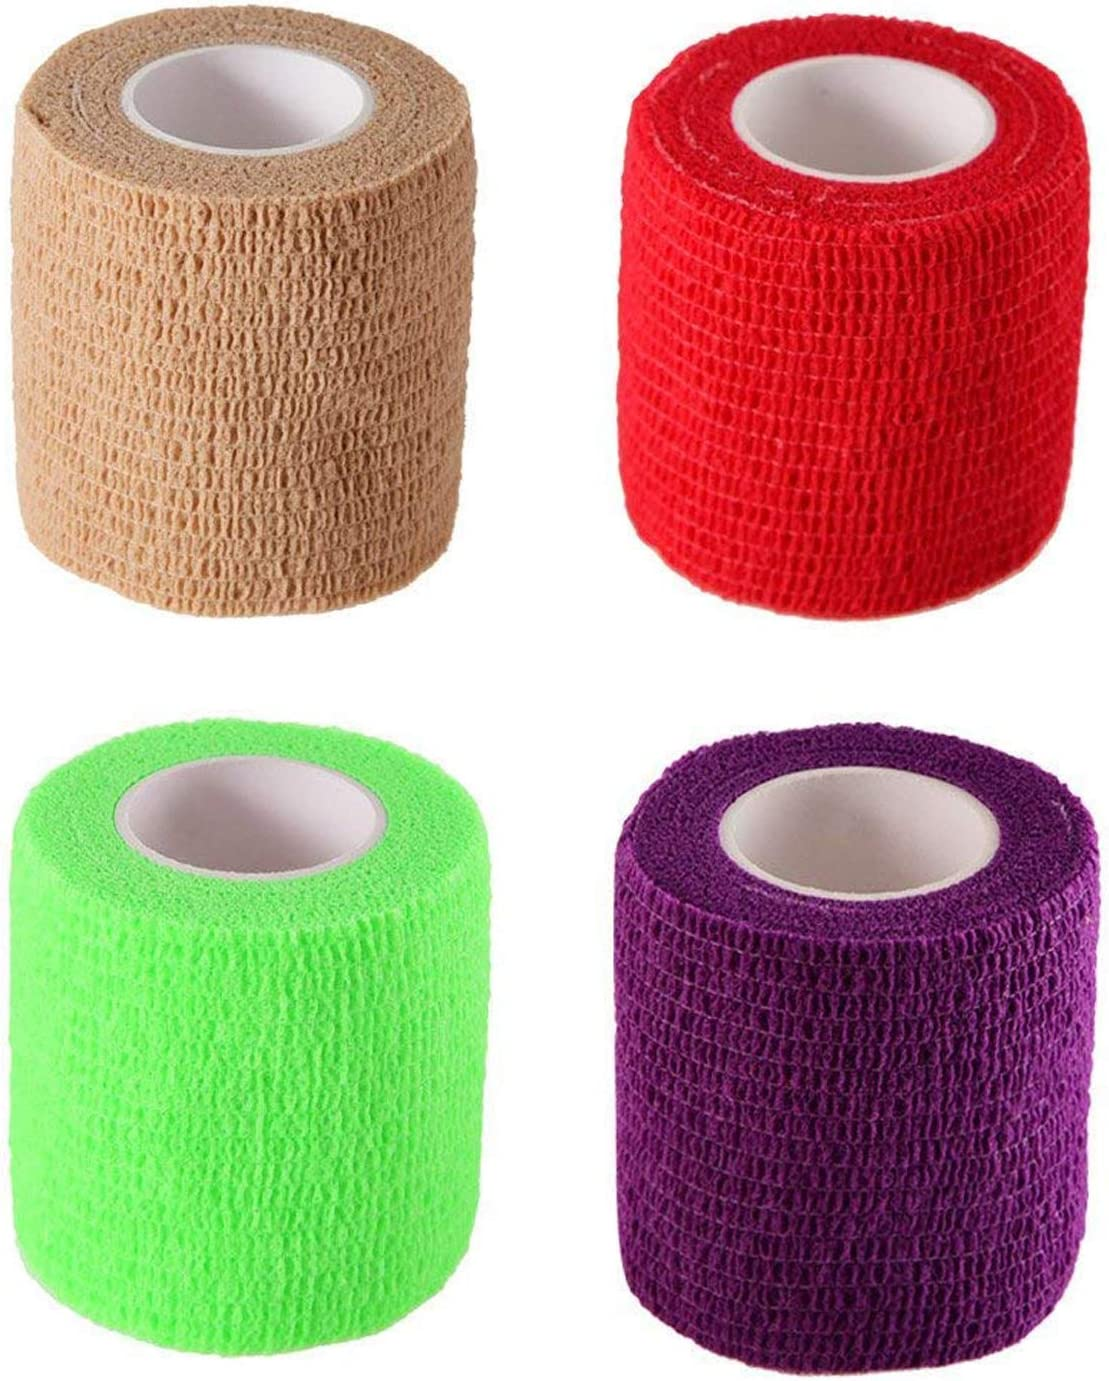 MIFASOO Yards Self Adherent Wrap Adhesive Bandage Tape for Strong Elastic Sports,Wrist,Ankle Sprains & Swelling (4 Pack)